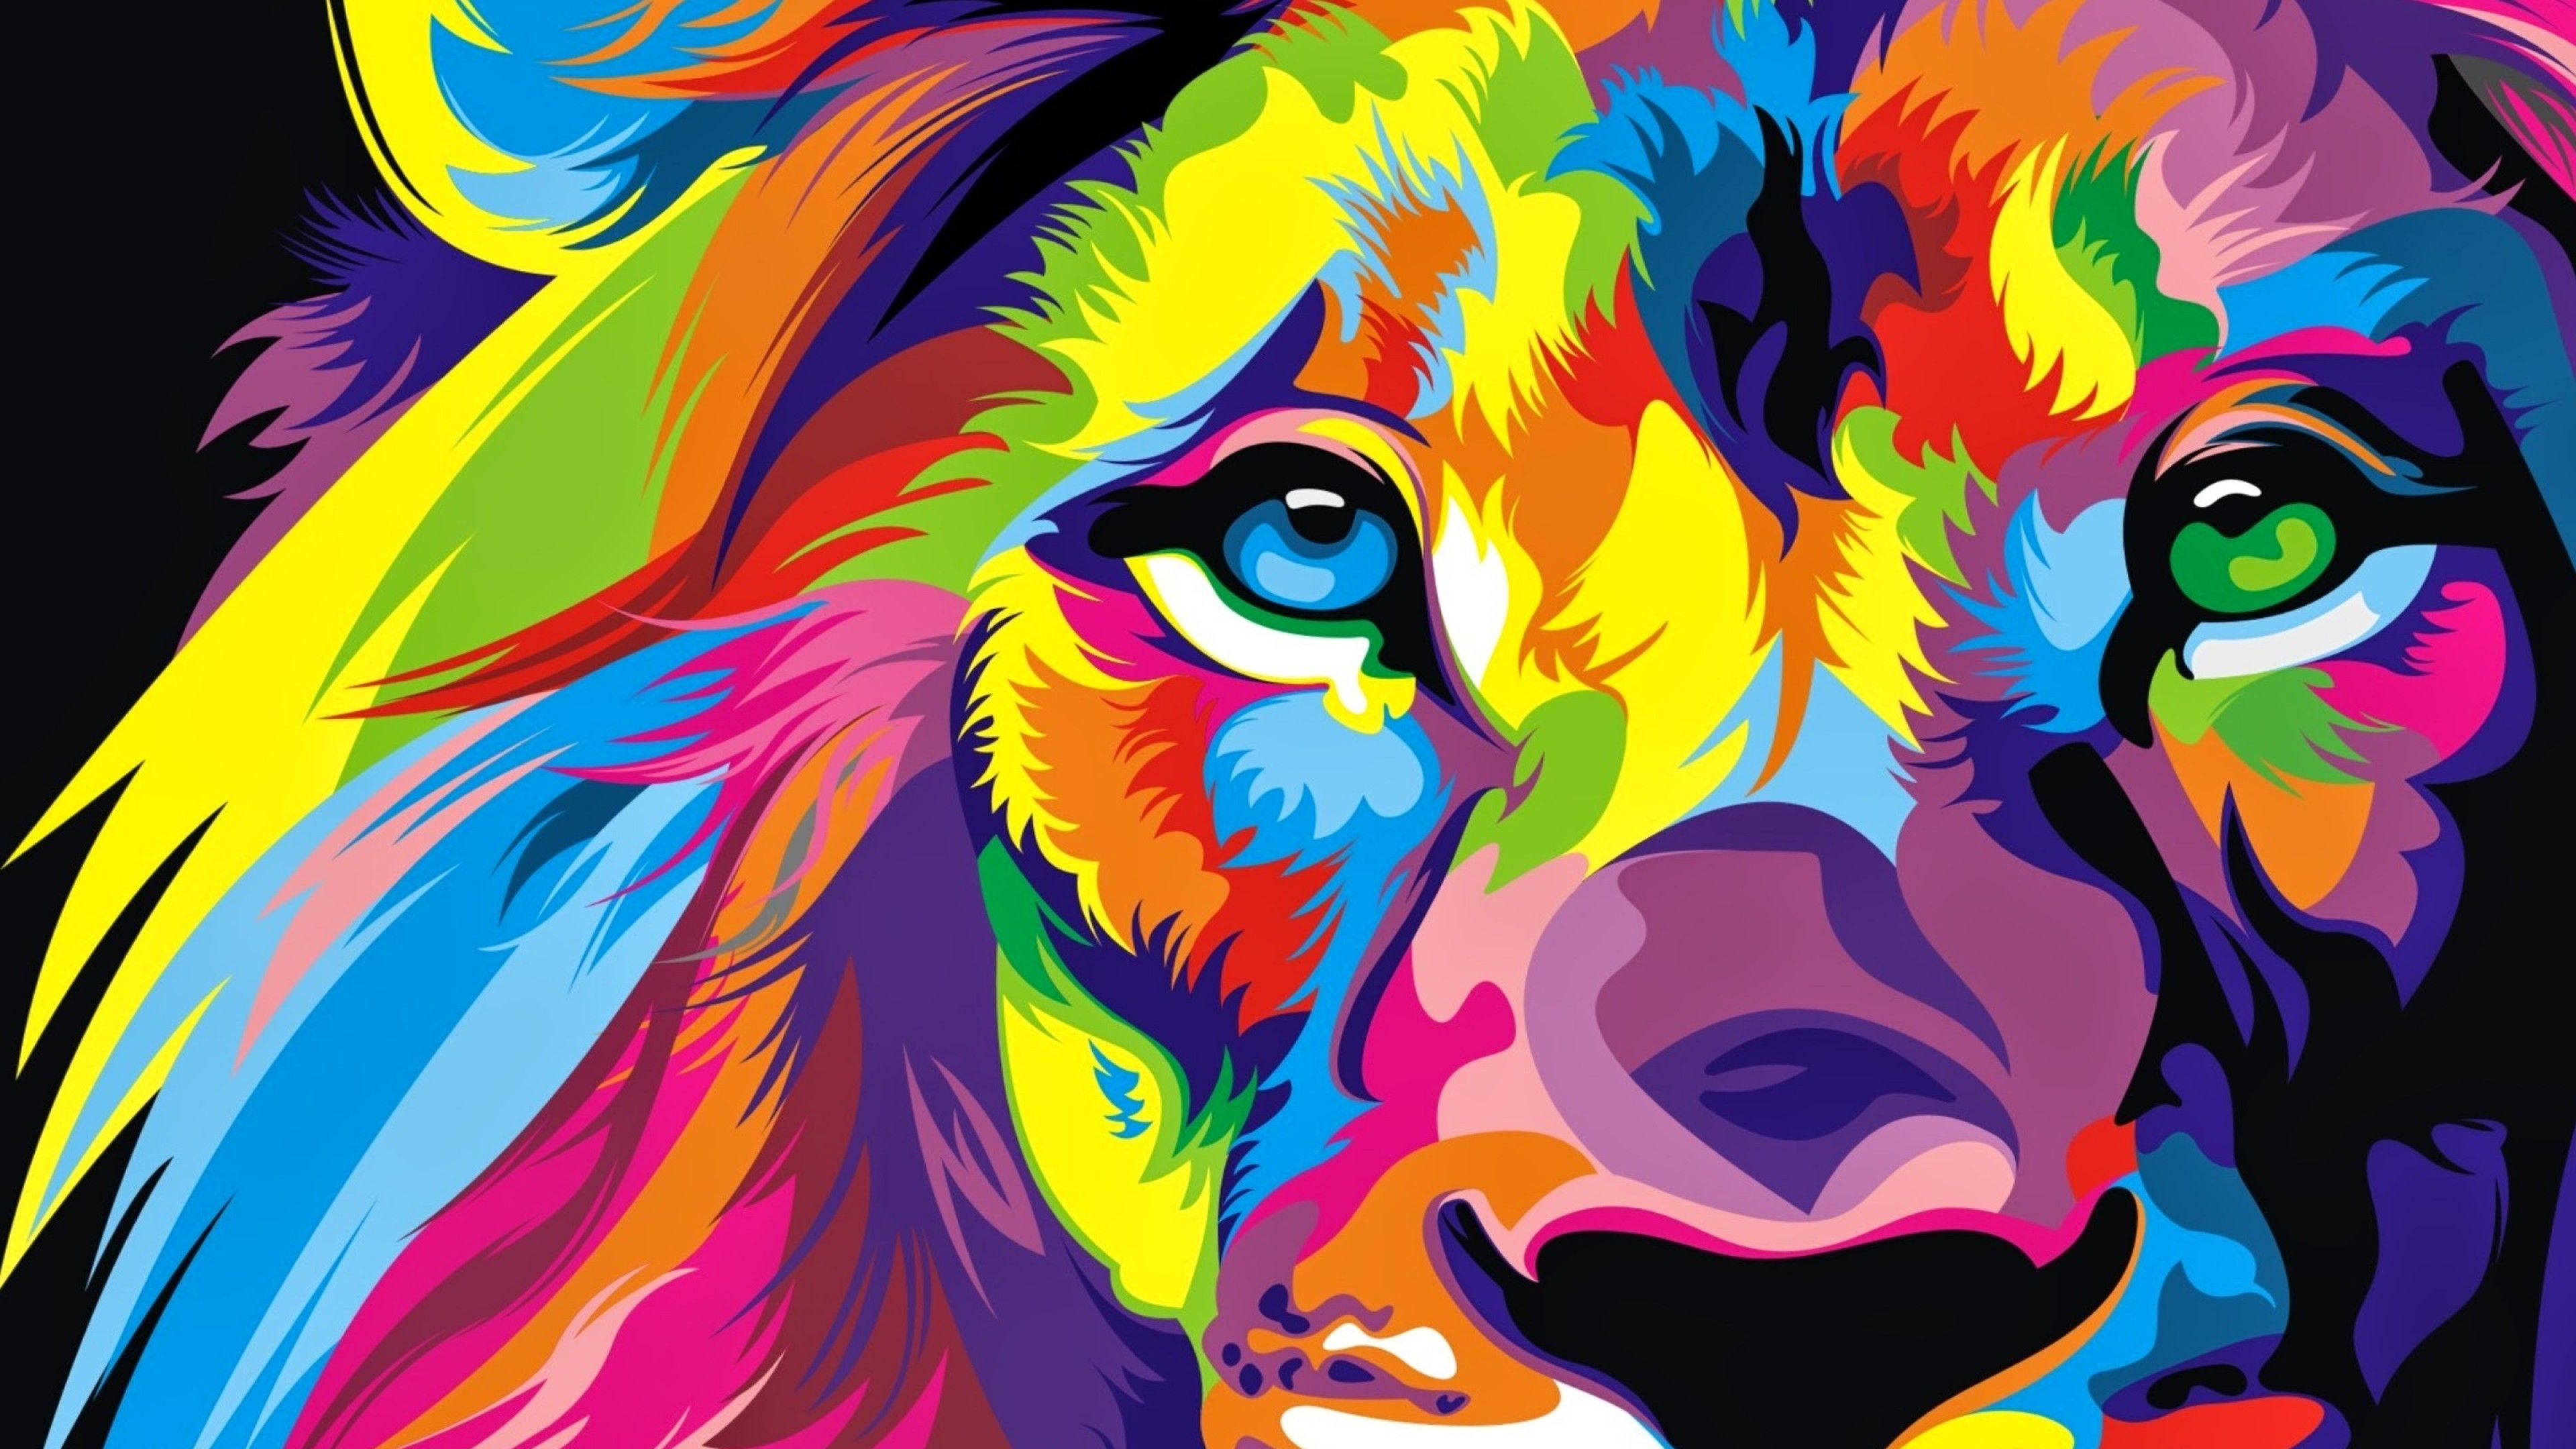 3840x2160 Download Full HD Colourful Lion Artwork Wallpaper 4K Ultra ...